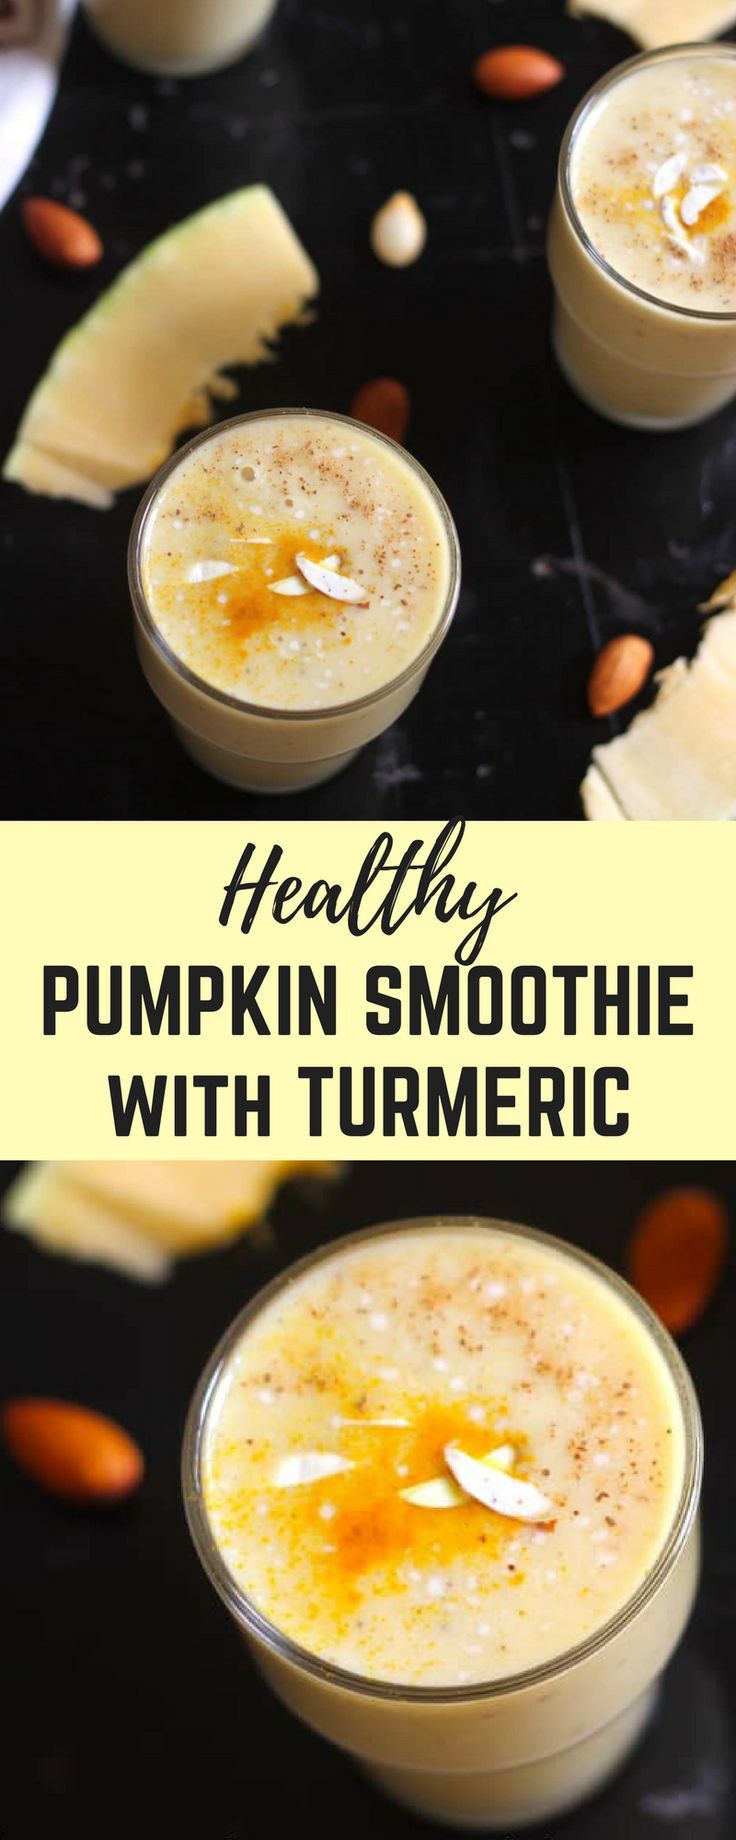 Healthy Pumpkin Smoothie with Banana, Turmeric, Almonds and Honey - 5 minutes of prep at night, and enjoy this super healthy, filling breakfast in just 2 minutes!